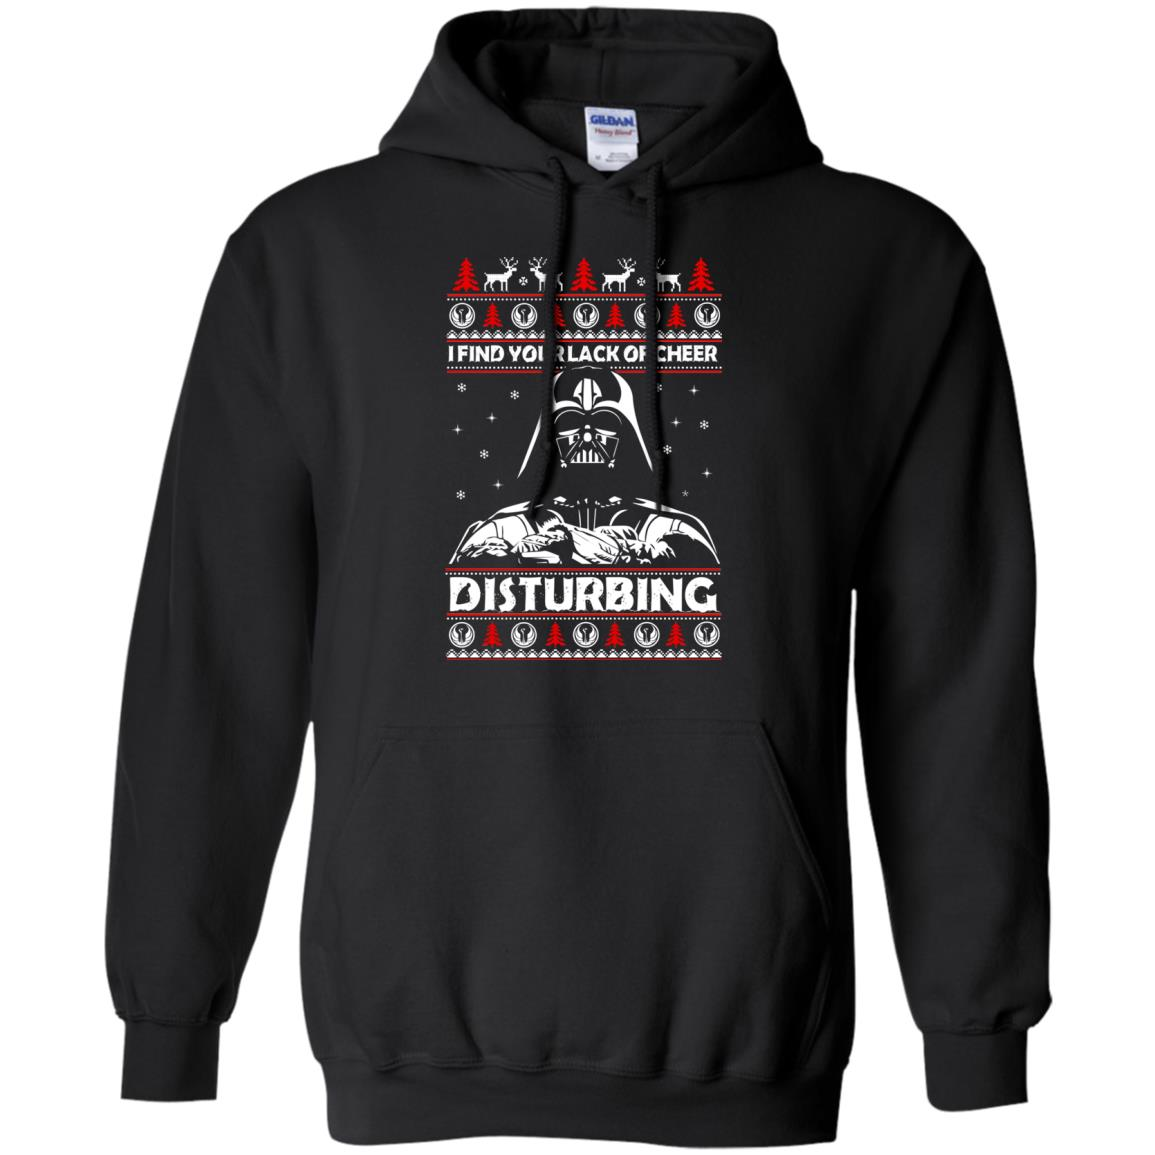 image 1762 - Darth Vader: I Find Your Lack of Cheer Disturbing Sweater, Shirt